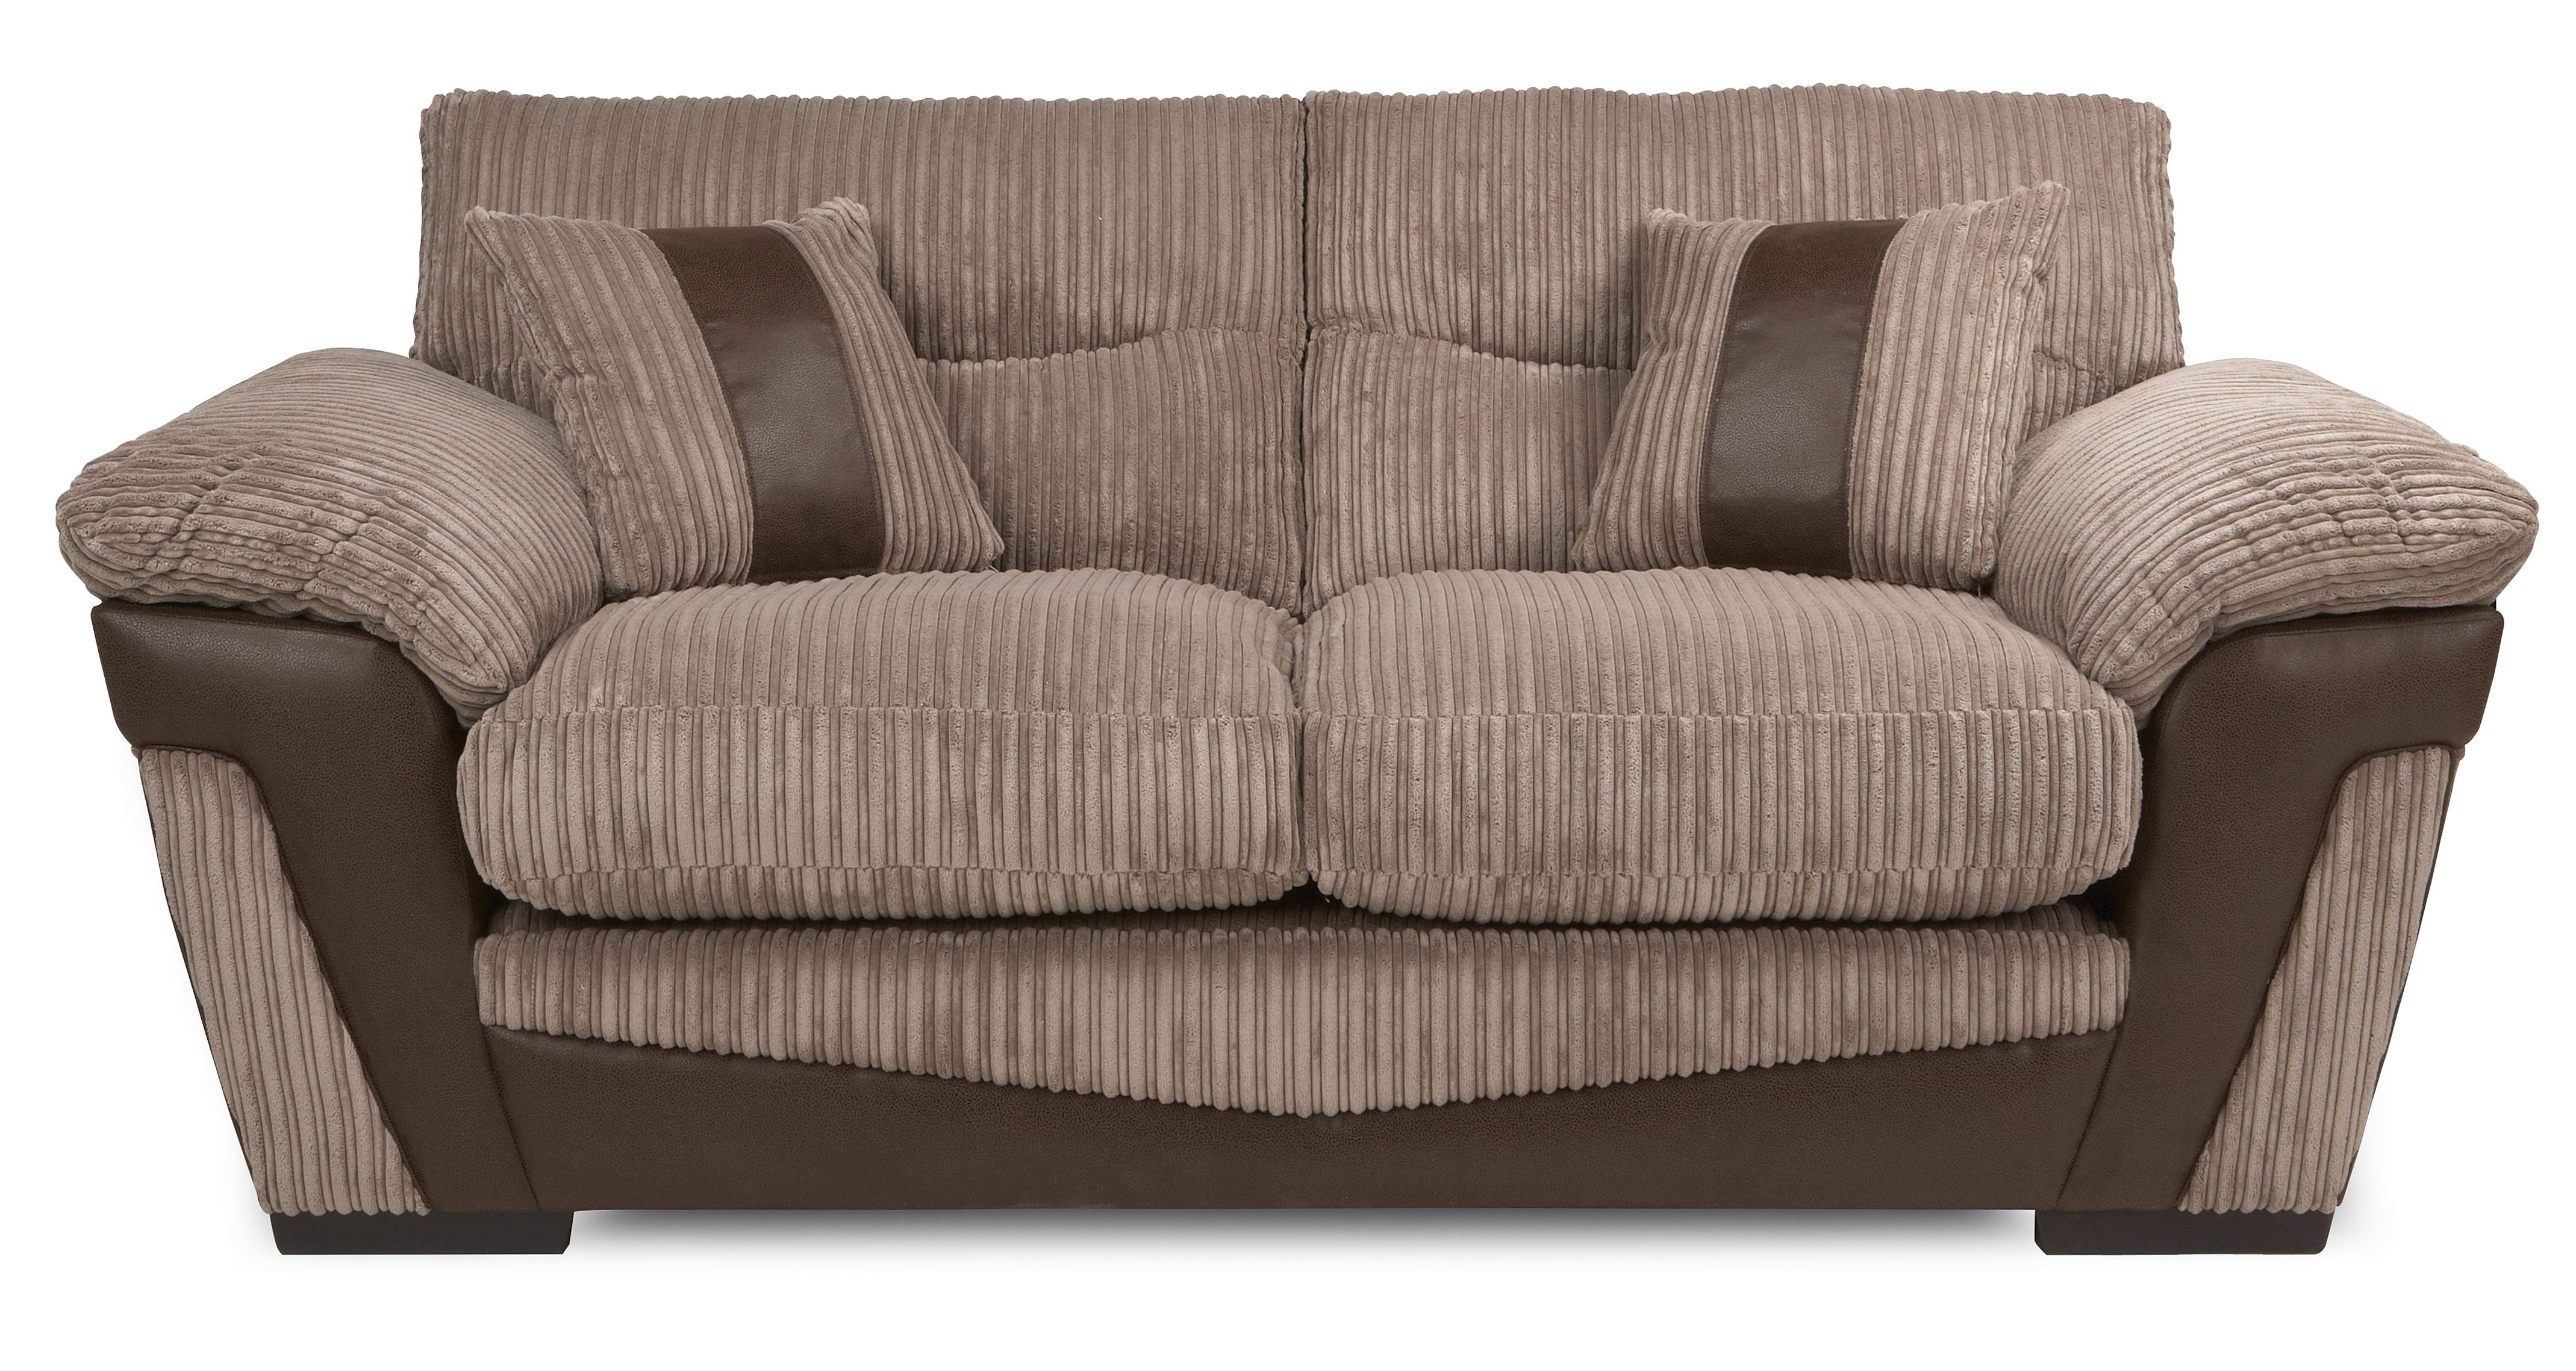 dfs chapter 2 seater fabric sofa bed ebay